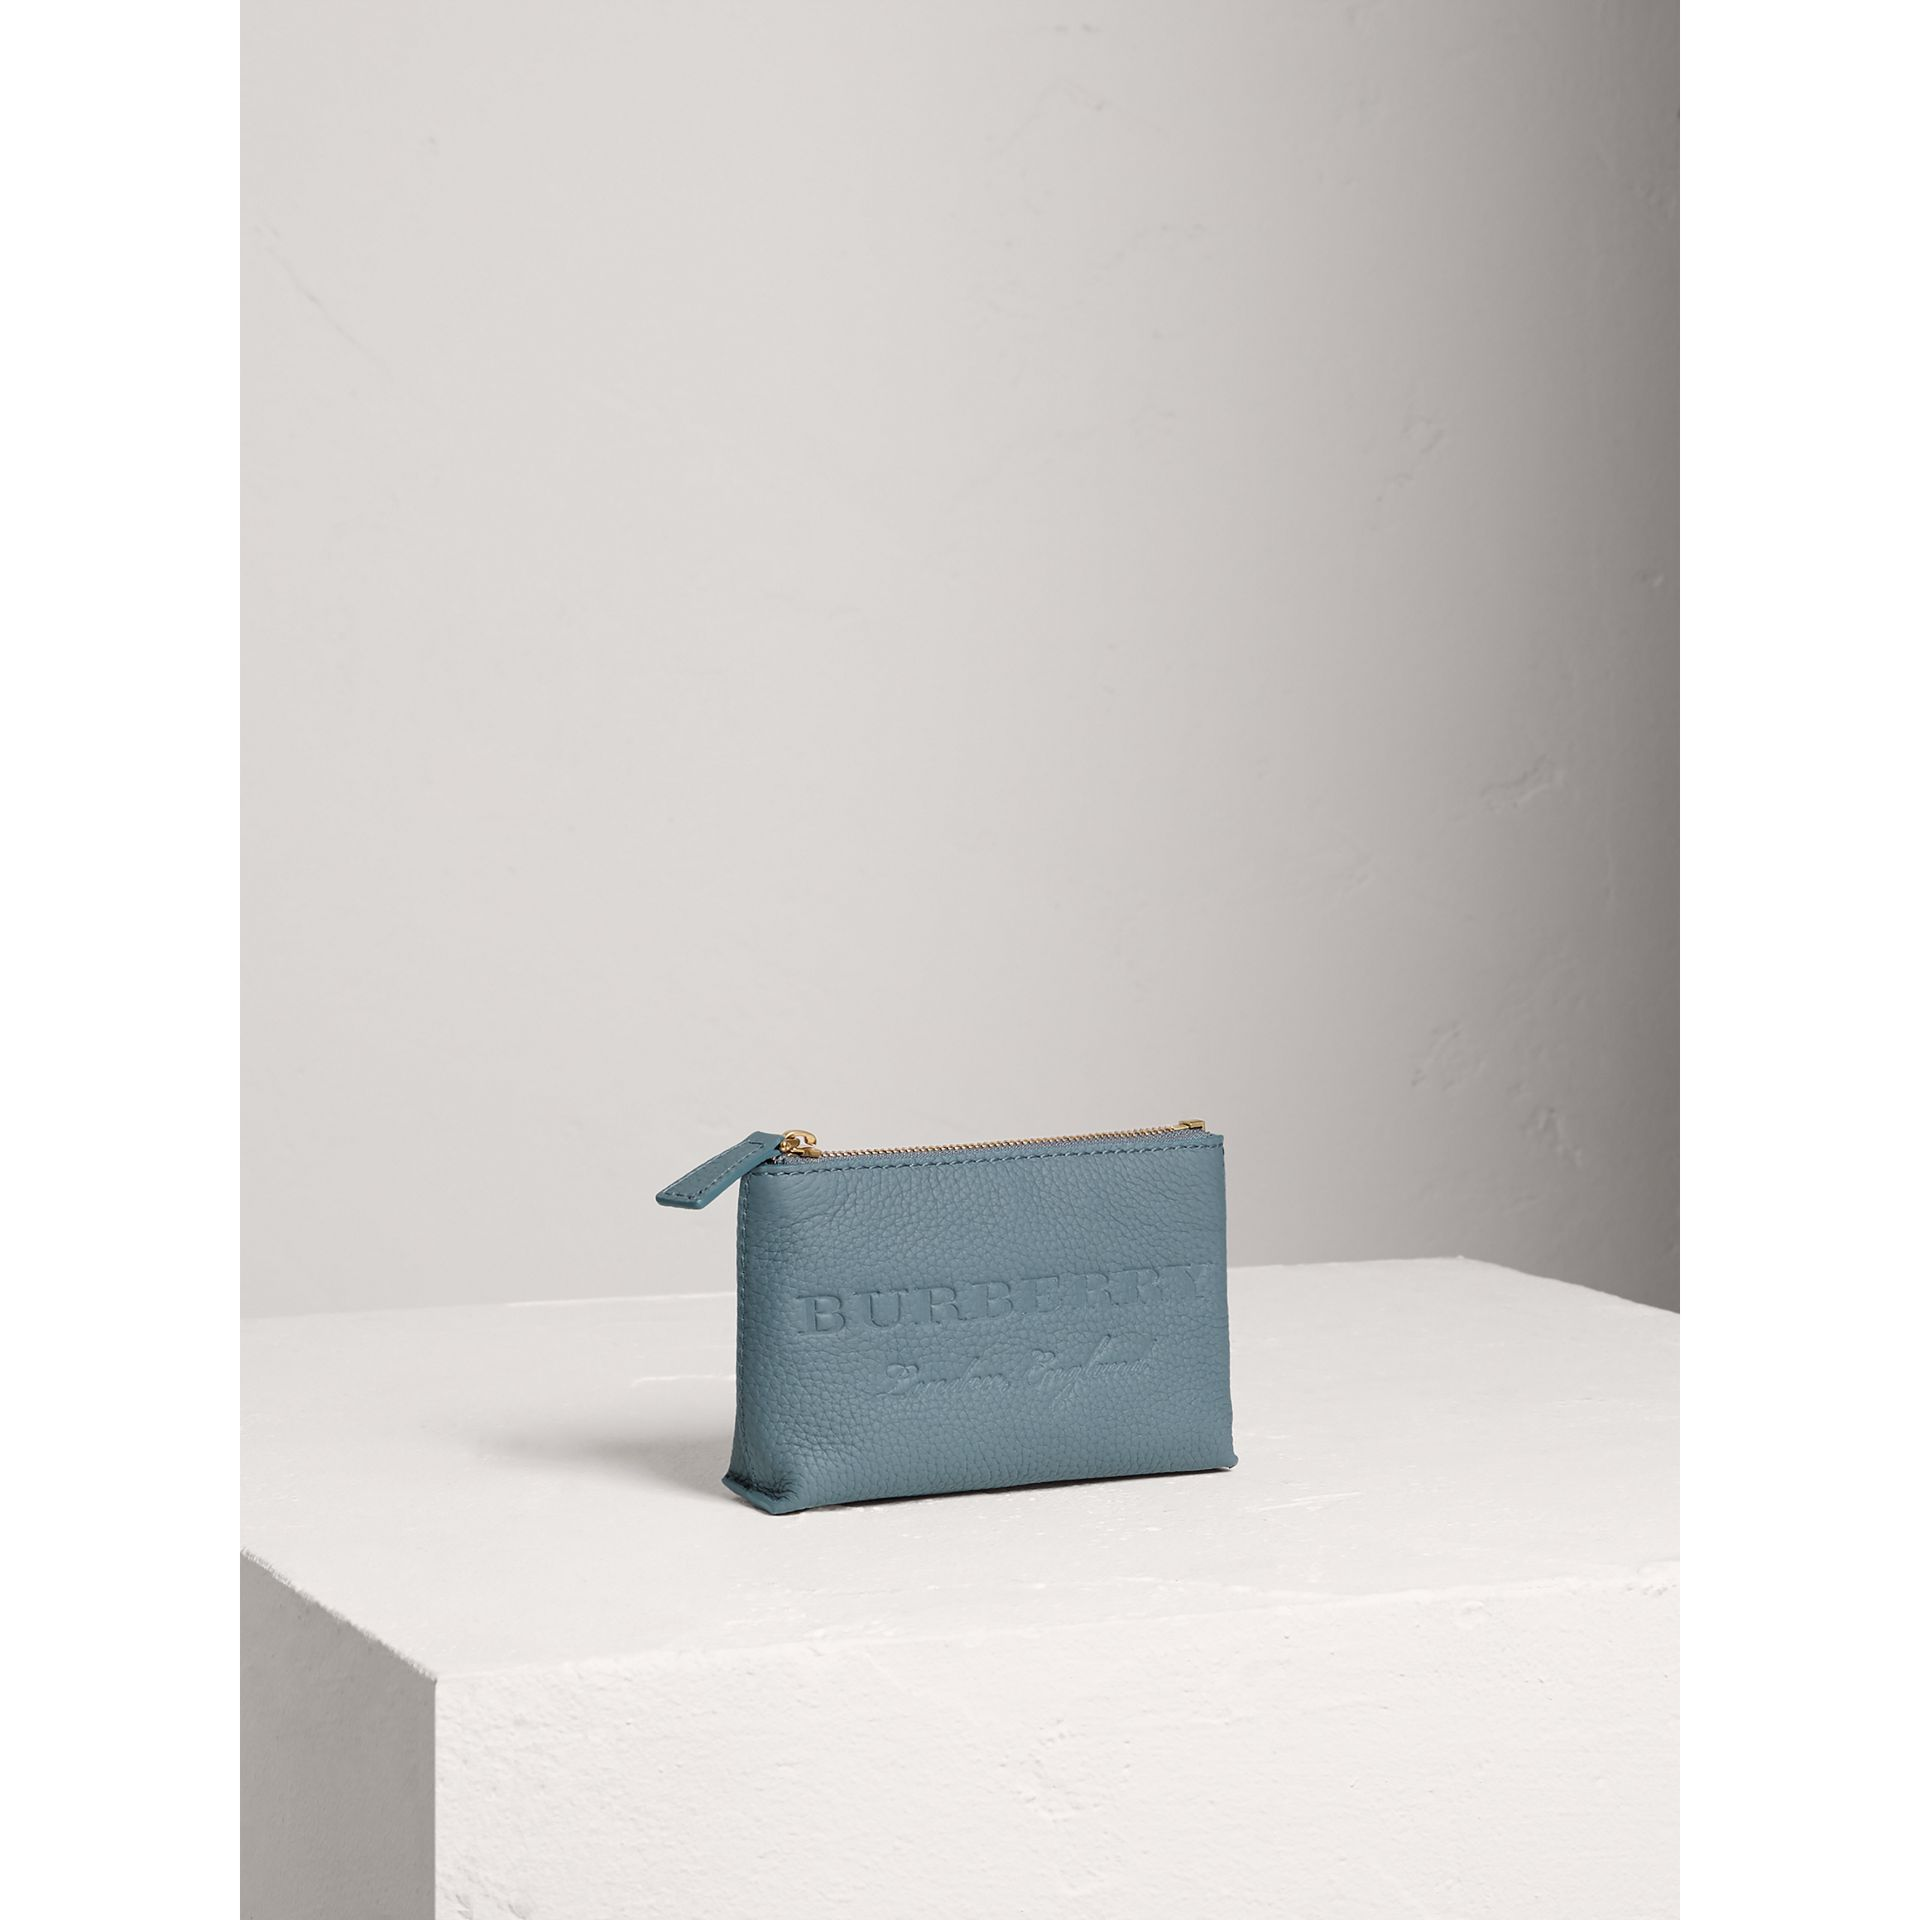 Small Embossed Leather Zip Pouch in Dusty Teal Blue | Burberry - gallery image 5